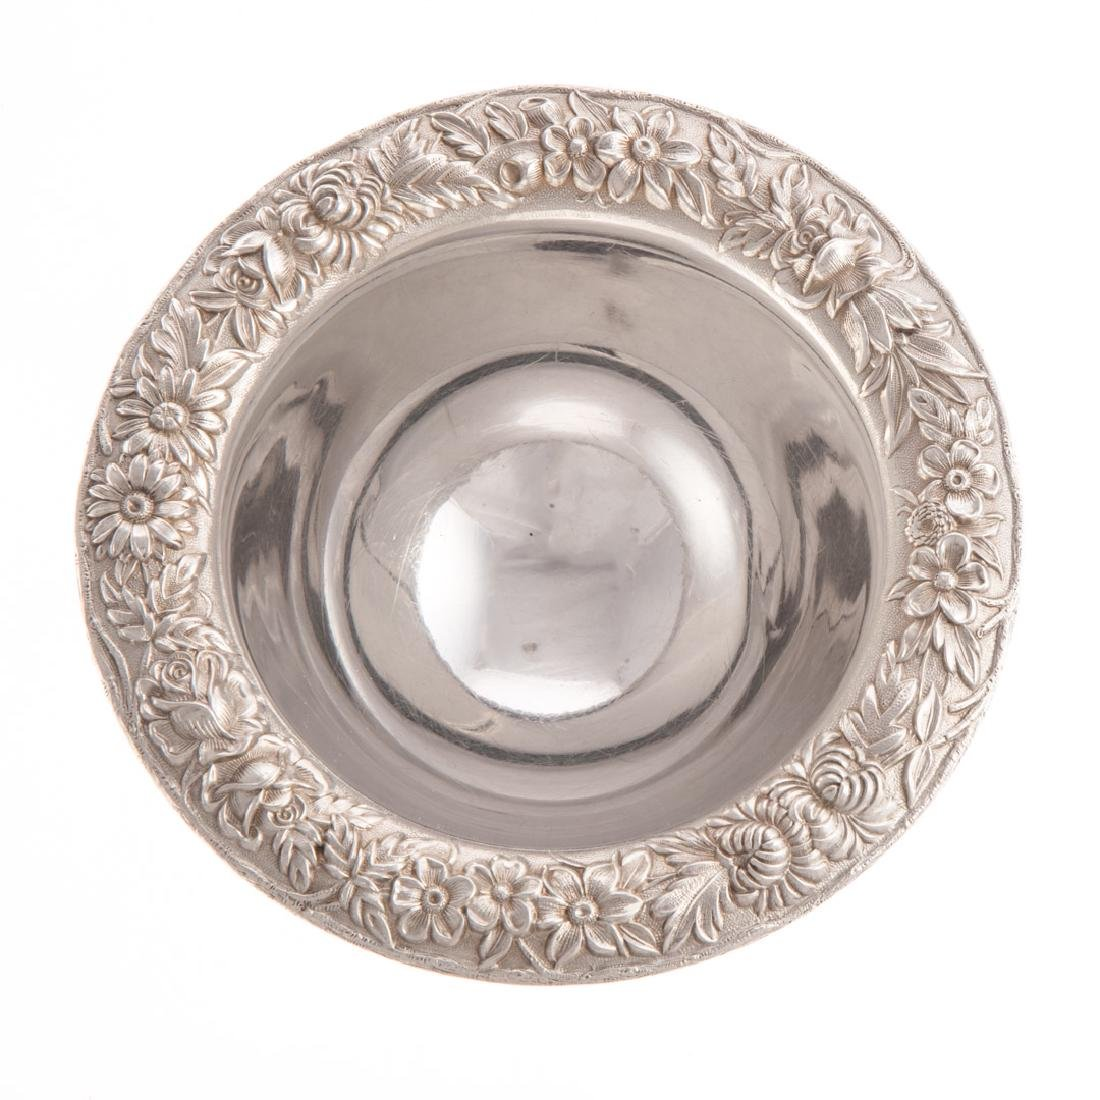 Kirk repousse sterling mayonnaise bowl - 3